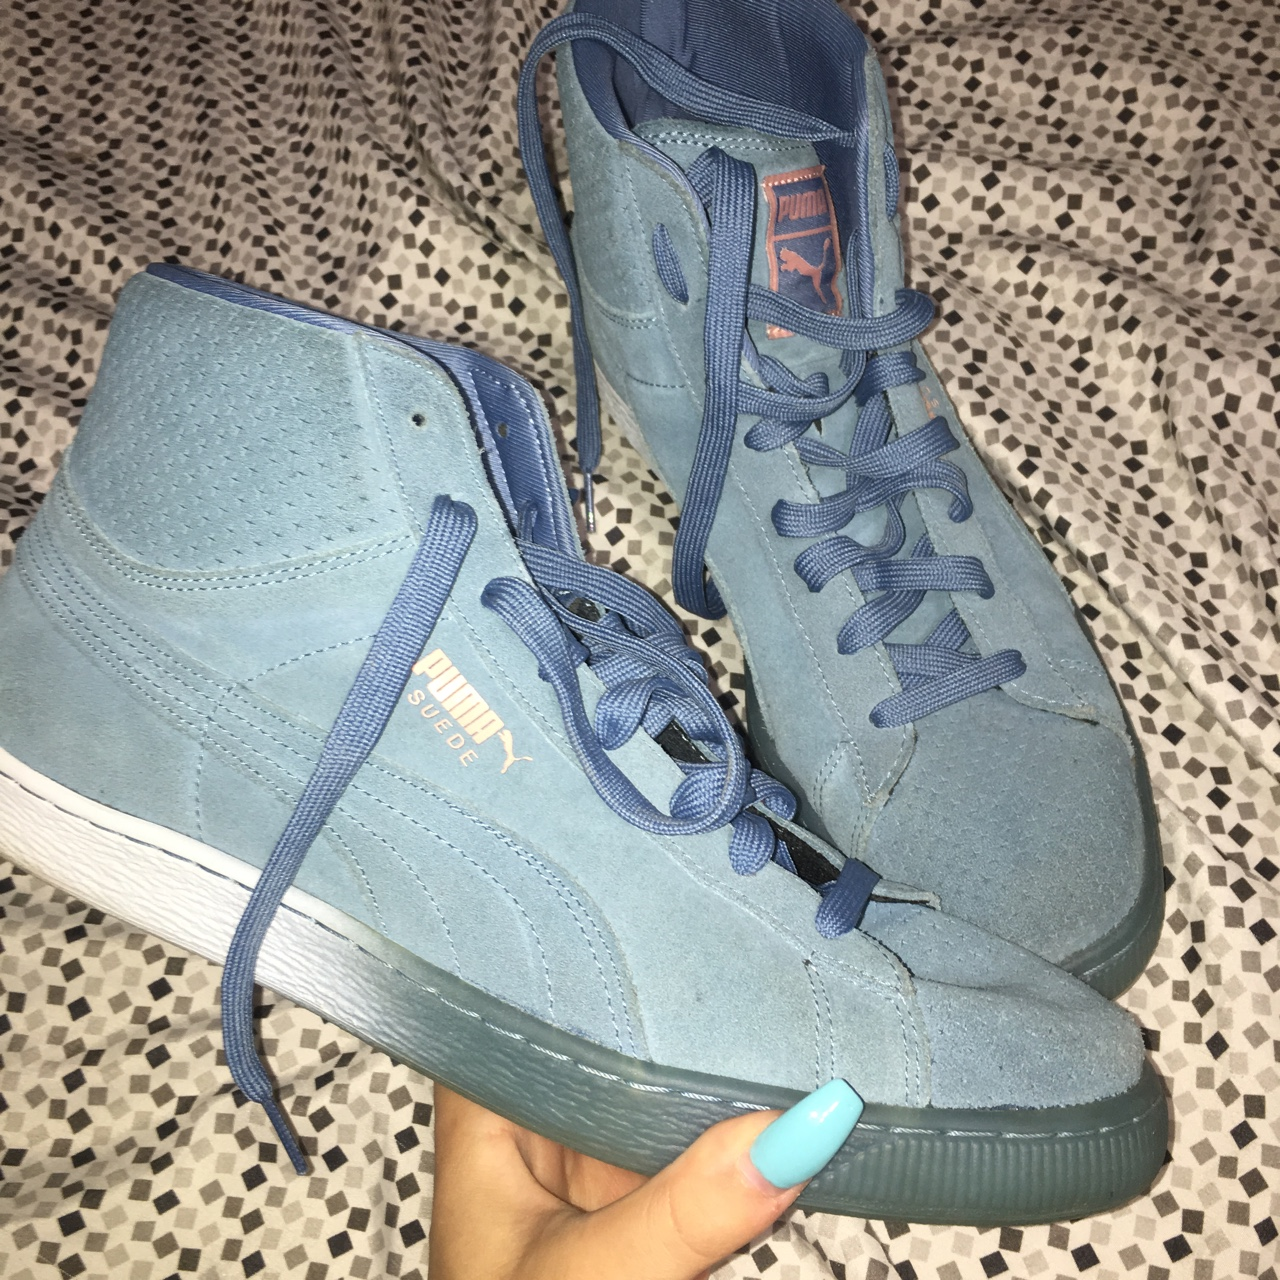 buy online 59357 c7a67 Puma X pink dolphin Suede collab worn once great... - Depop